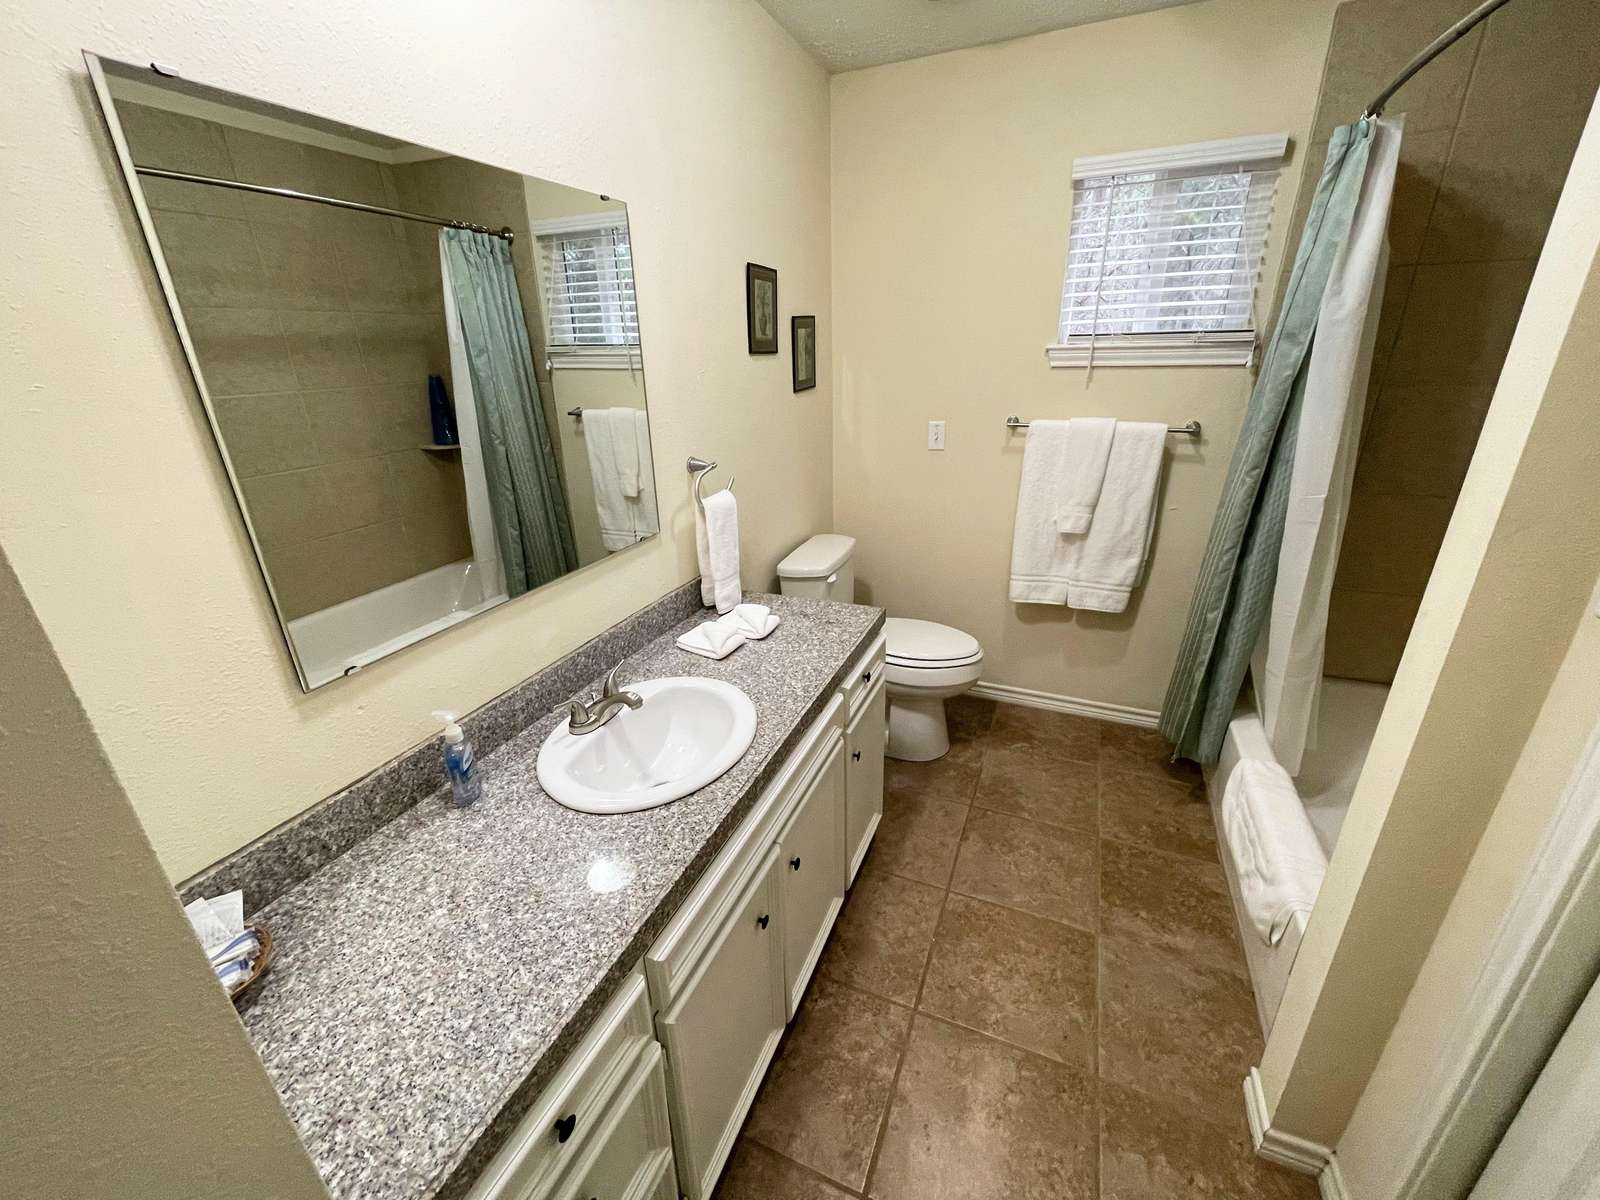 The Master Bathroom with tiled tub/shower unit.